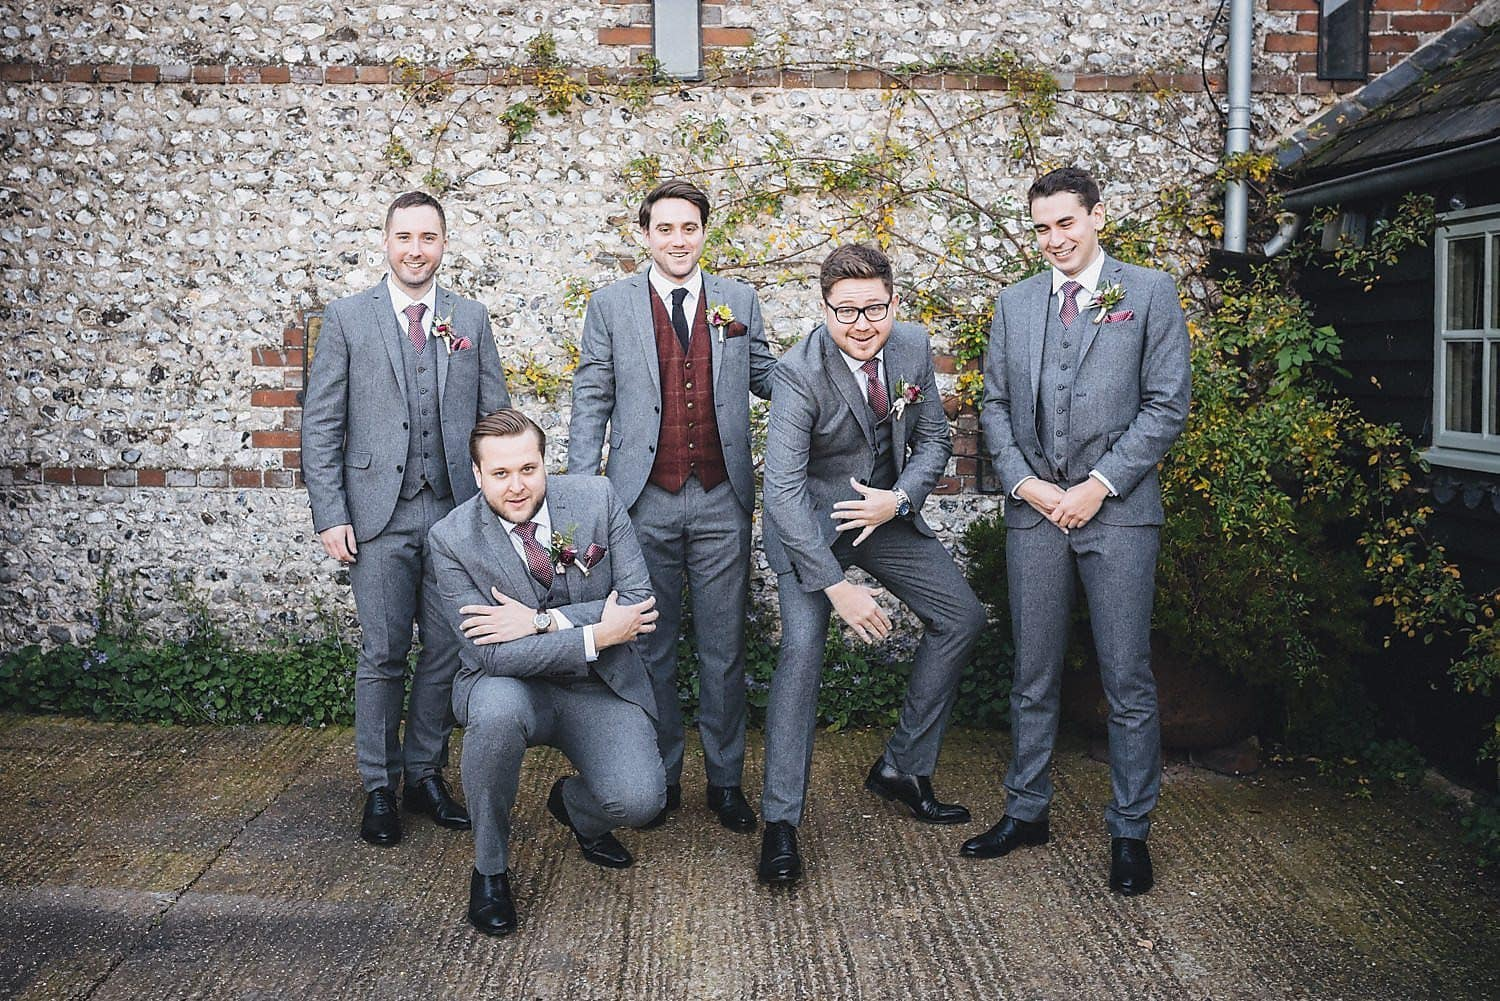 A funny group shot of the groom and groomsmen